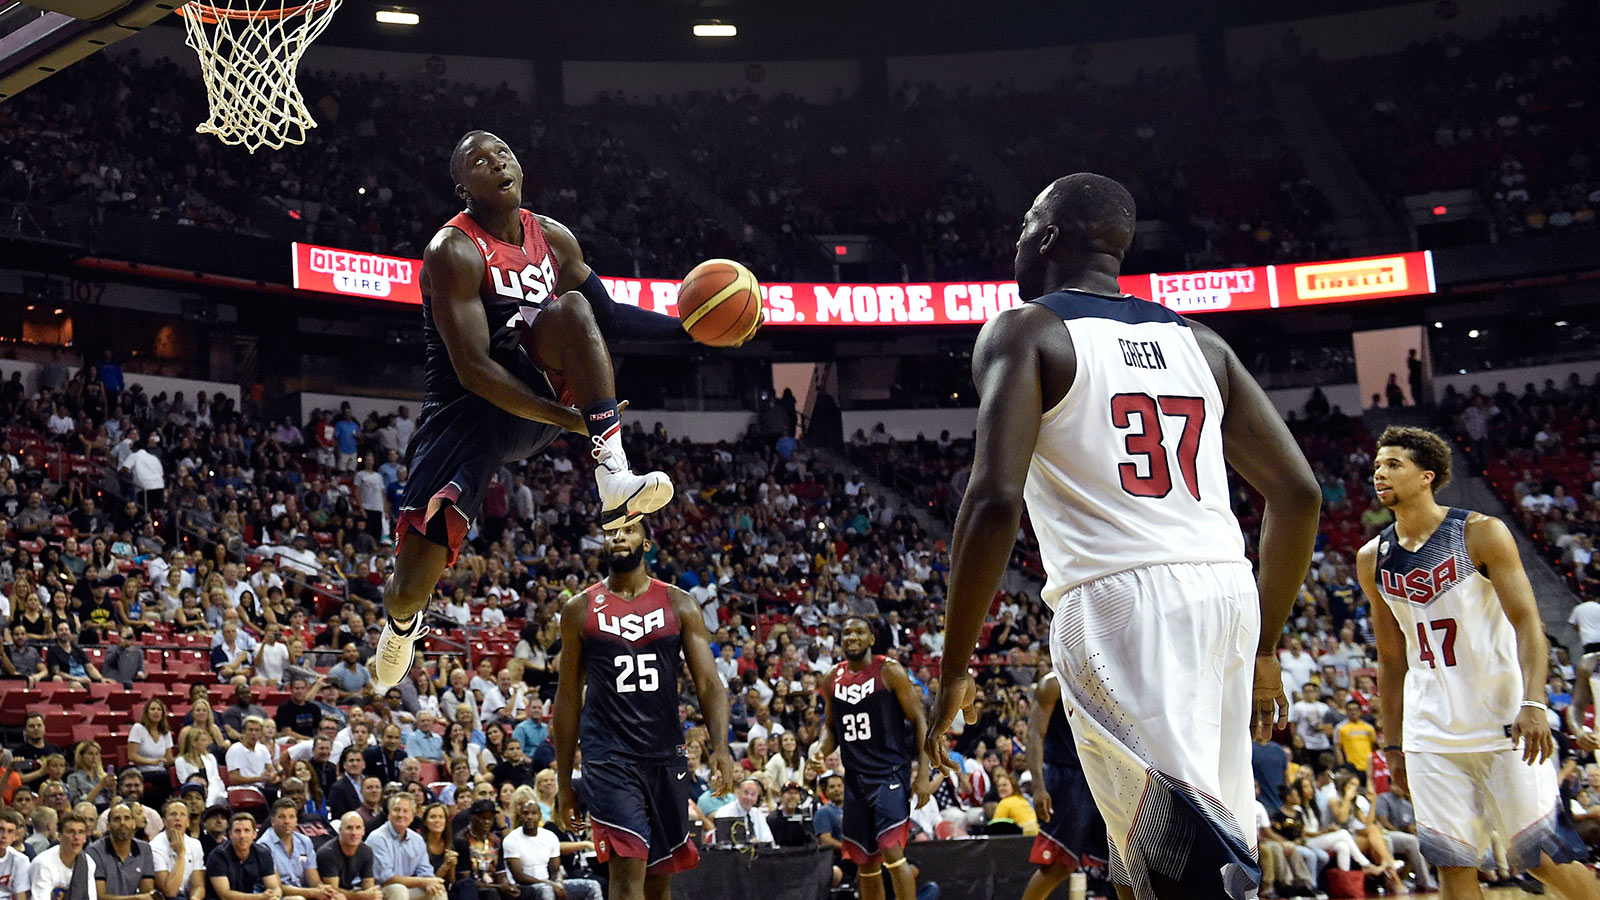 Team USA ends Vegas camp with high-scoring exhibition game